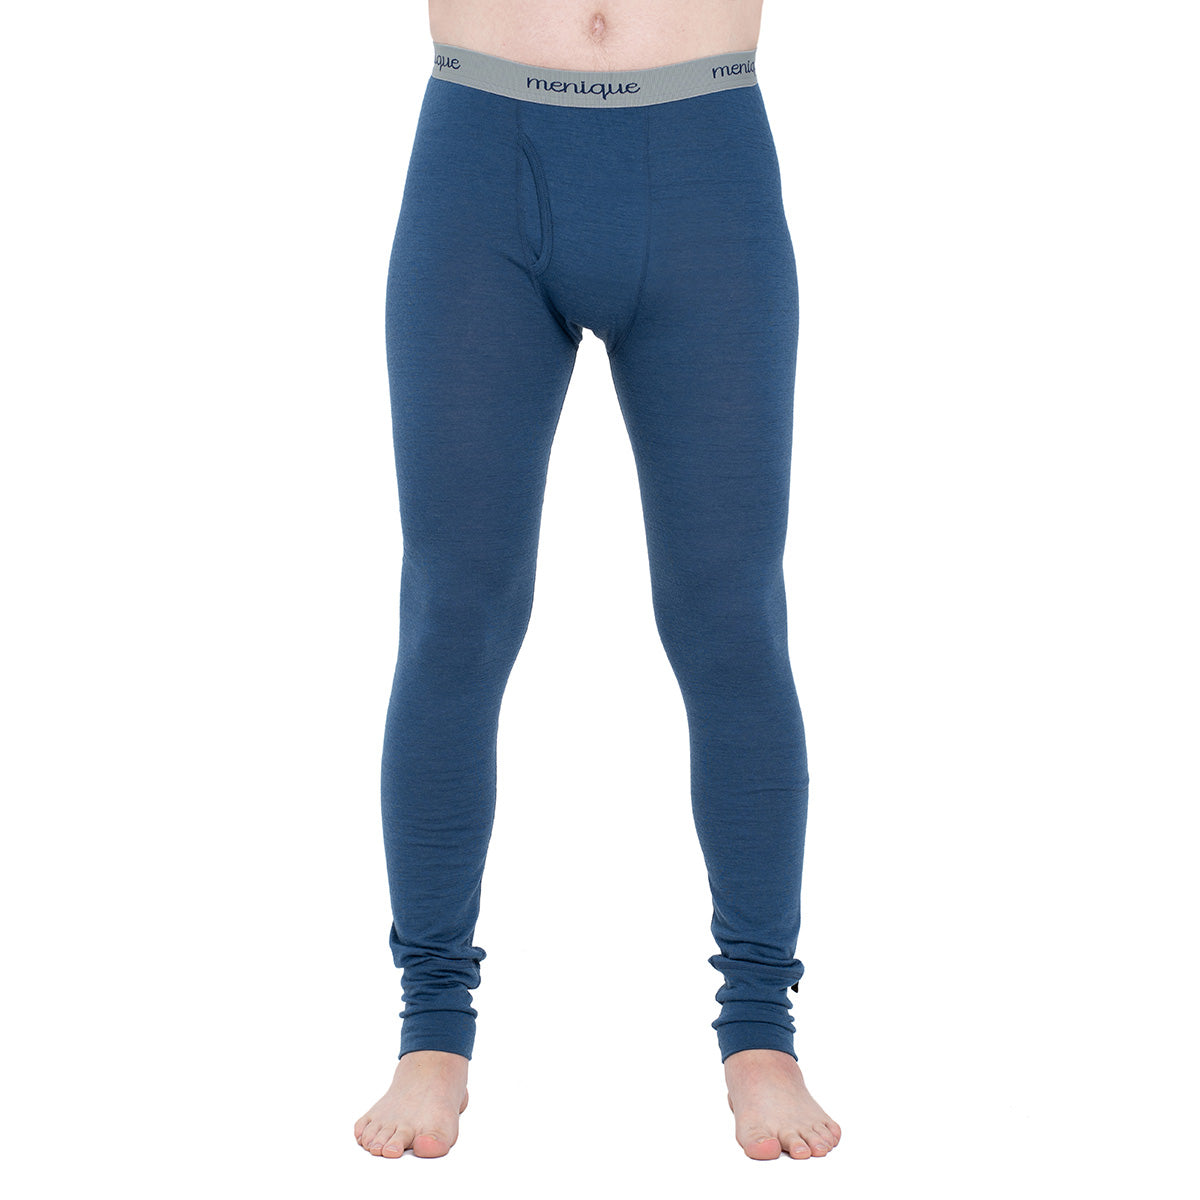 menique Men's Merino 160 Pants RB Denim Color